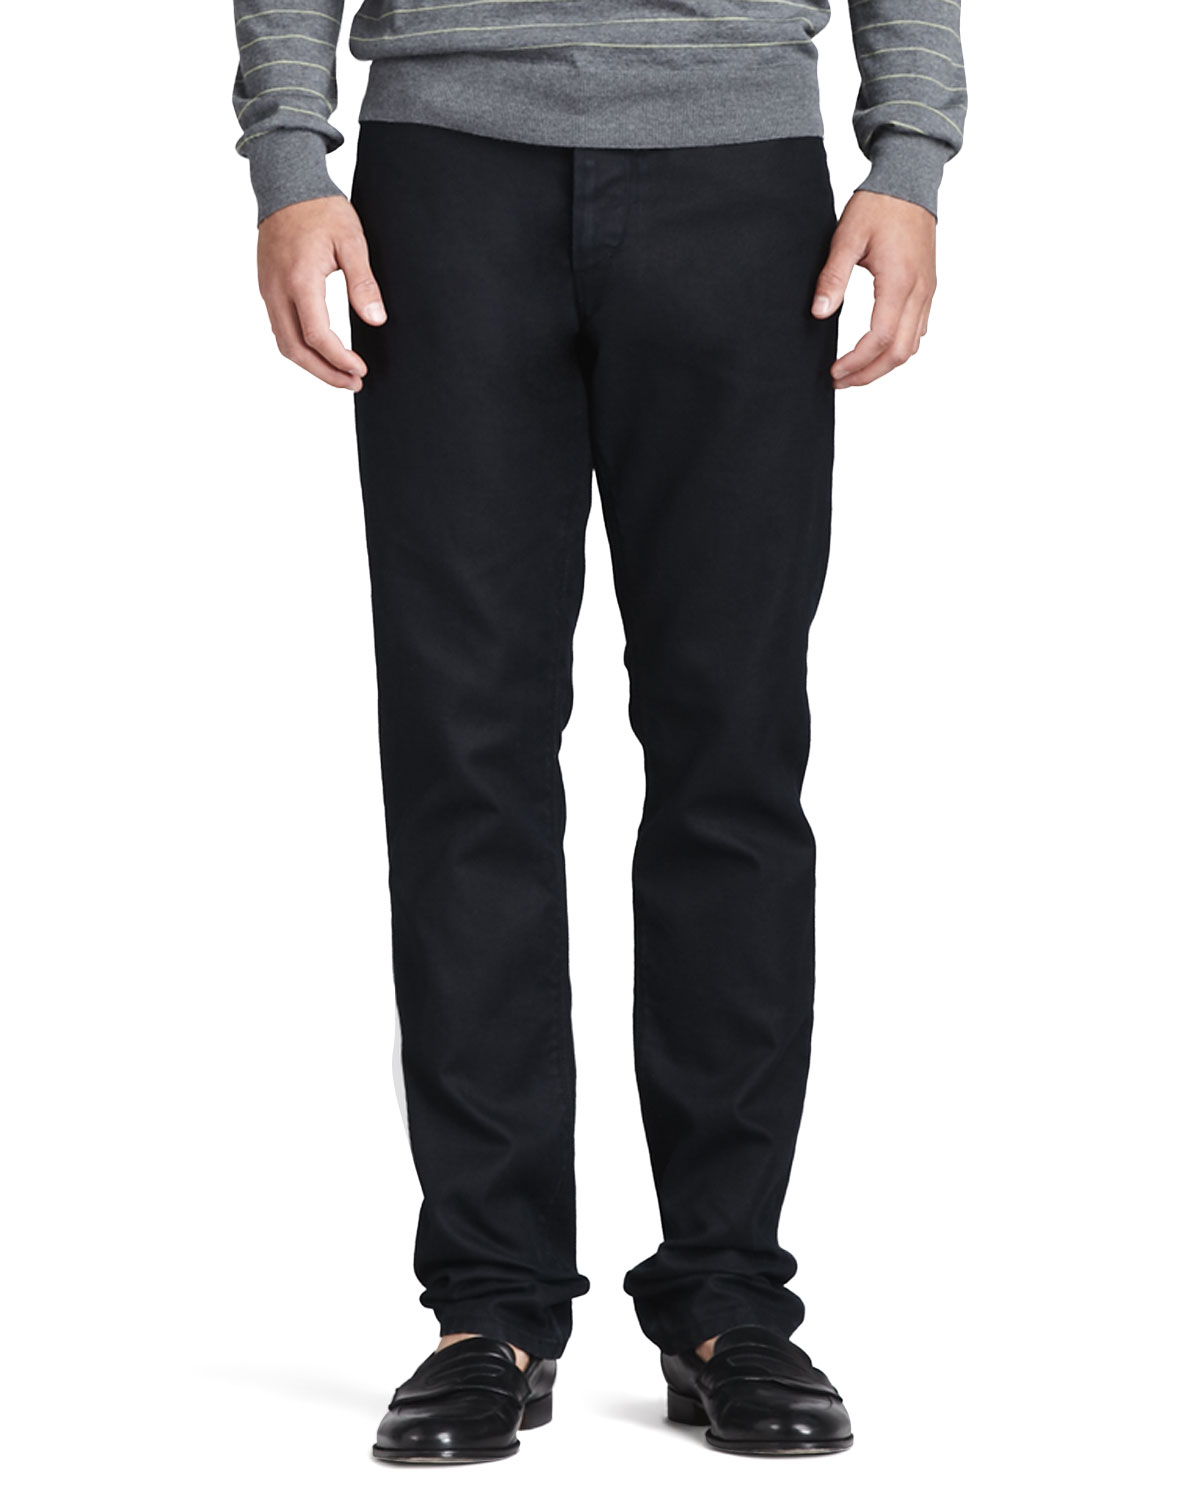 Slim Five-Pocket Pants, Black